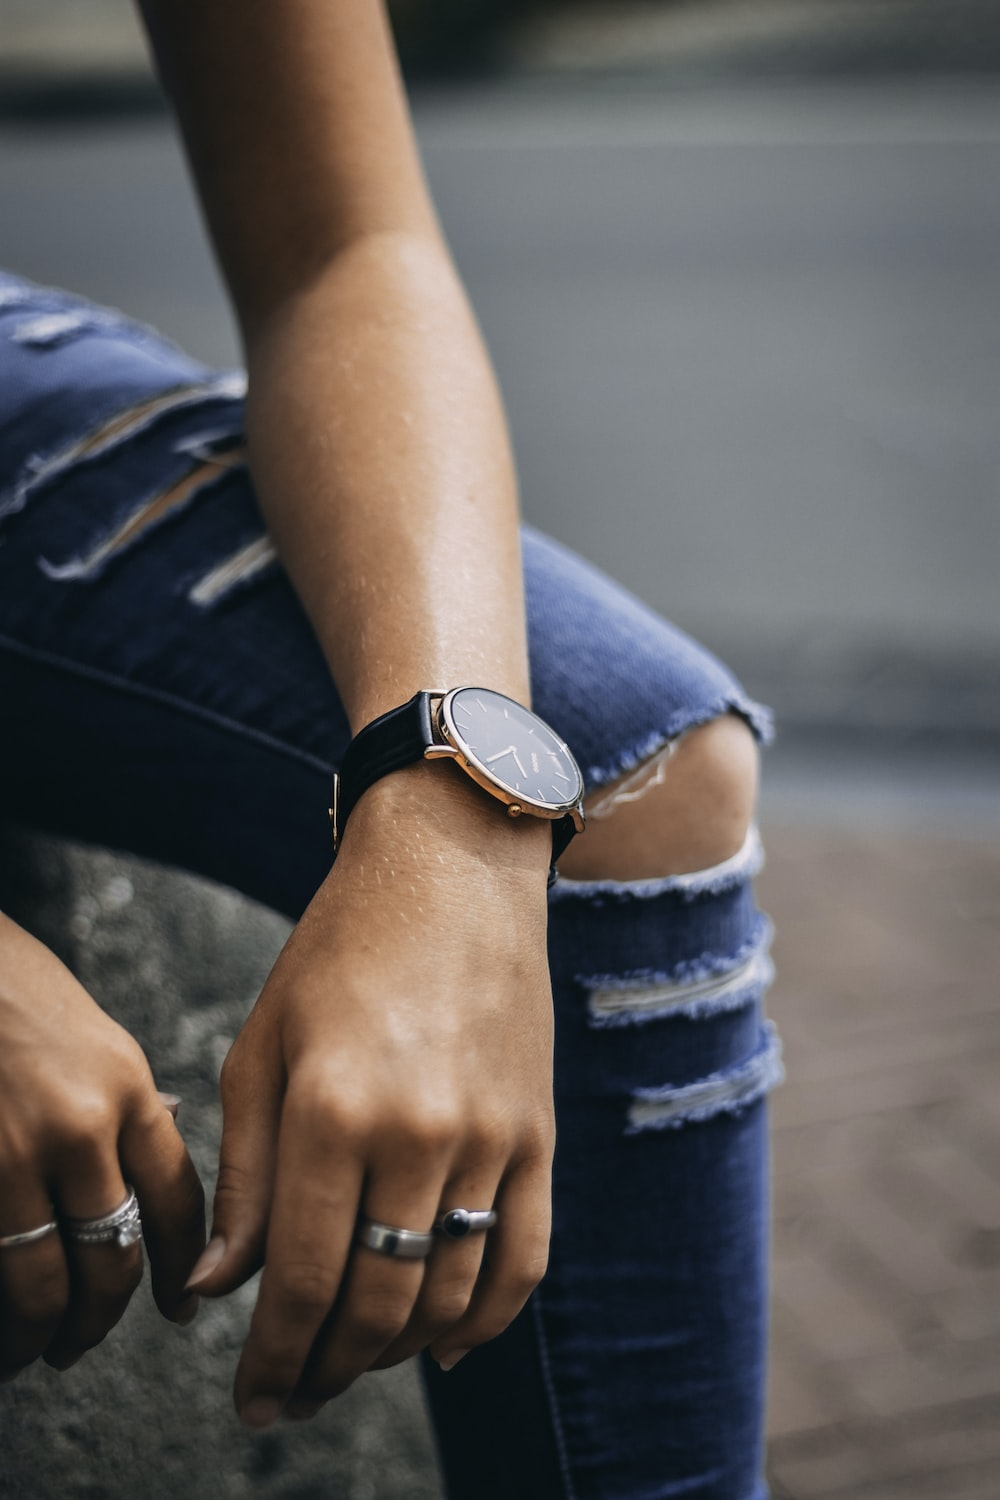 sitting person wearing silver-colored analog watch